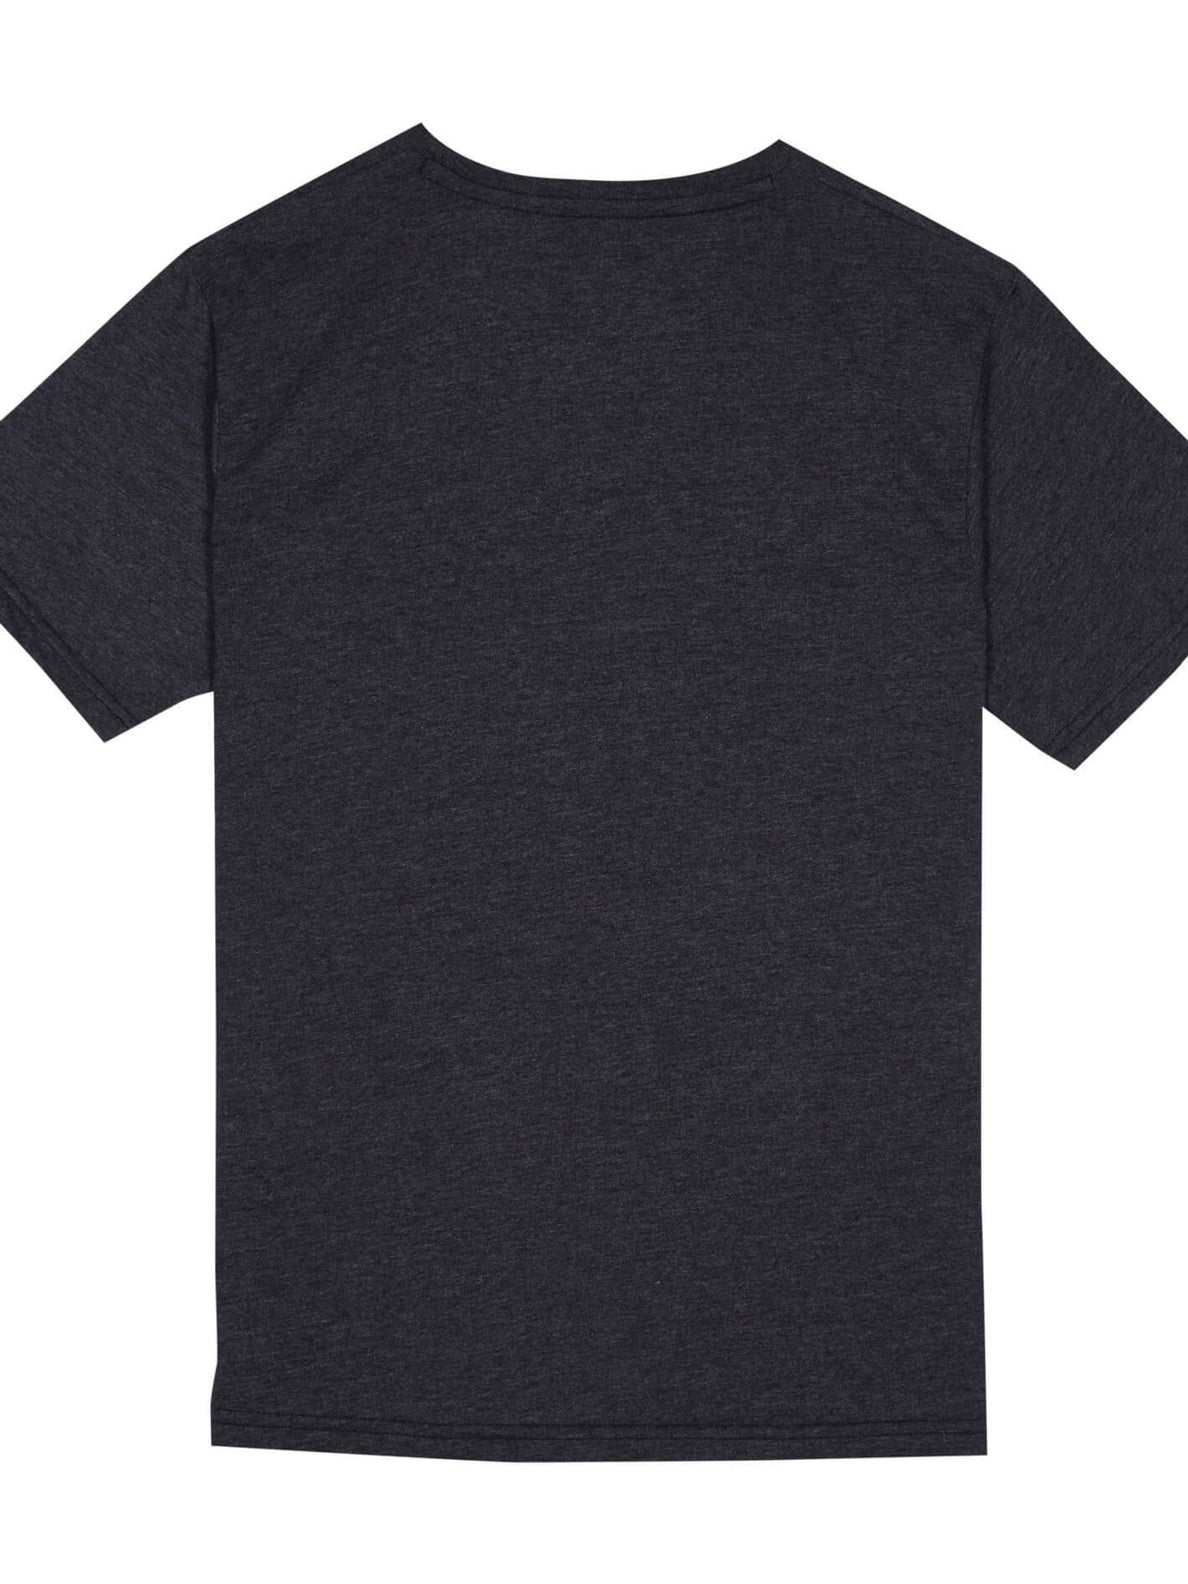 pinline-stone-hth-ss-heather-black-2(Kids)